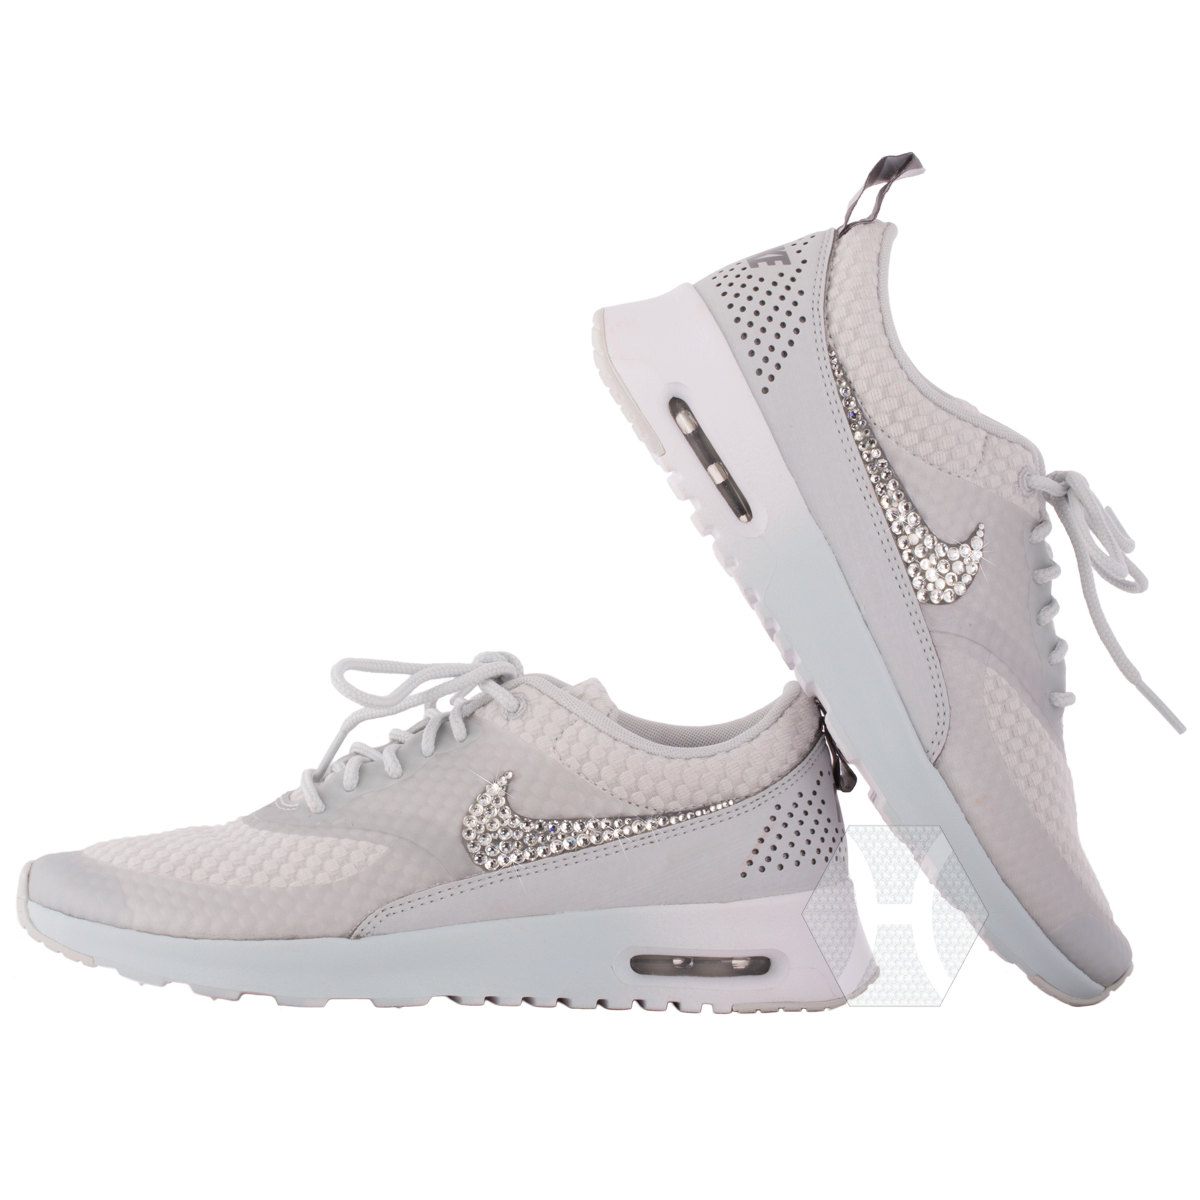 4475d21015 Women's Nike Air Max Thea Premium w/Swarovski Crystals details in Light  Base Grey/Cool Grey/Metallic